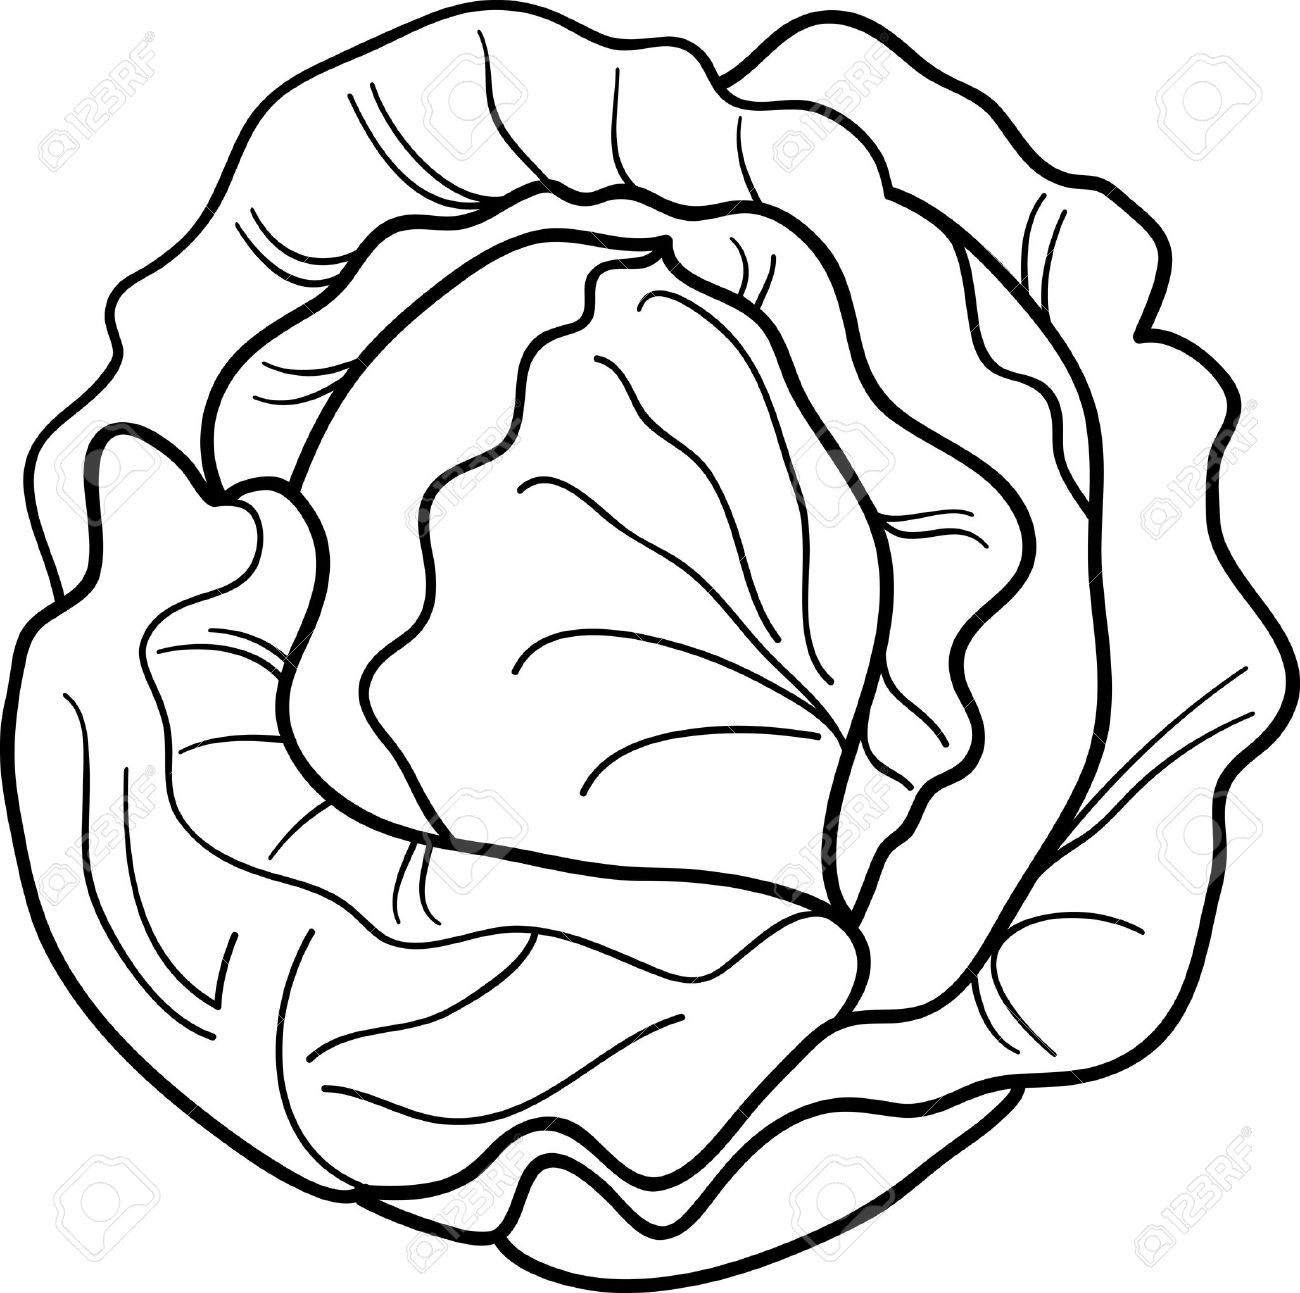 Image Result For Printable Lettuce Clipart Black And White